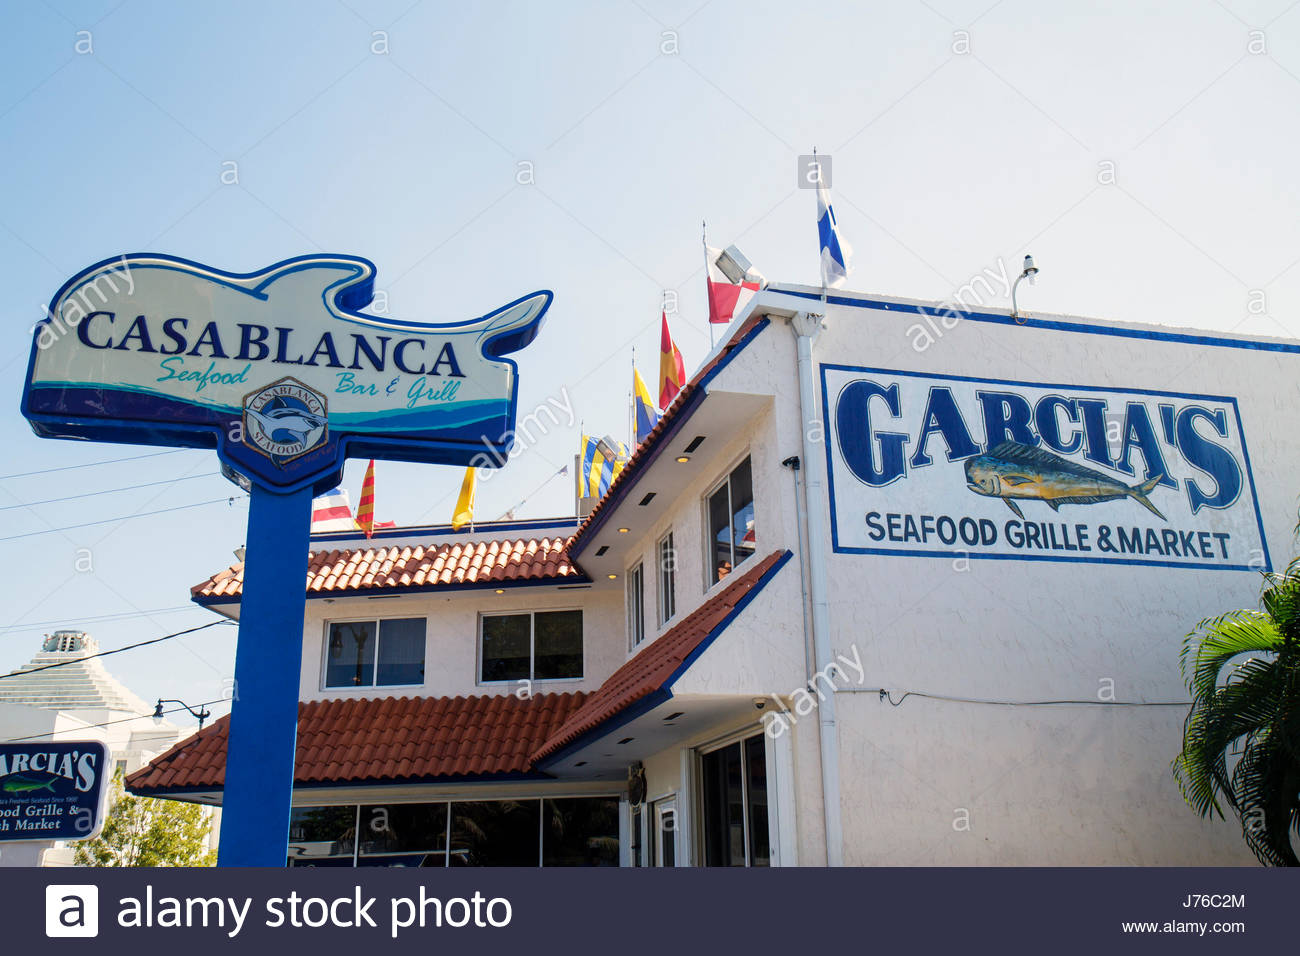 Miami florida casablanca seafood bar and grill garcia 39 s for Garcia s seafood grille fish market miami fl